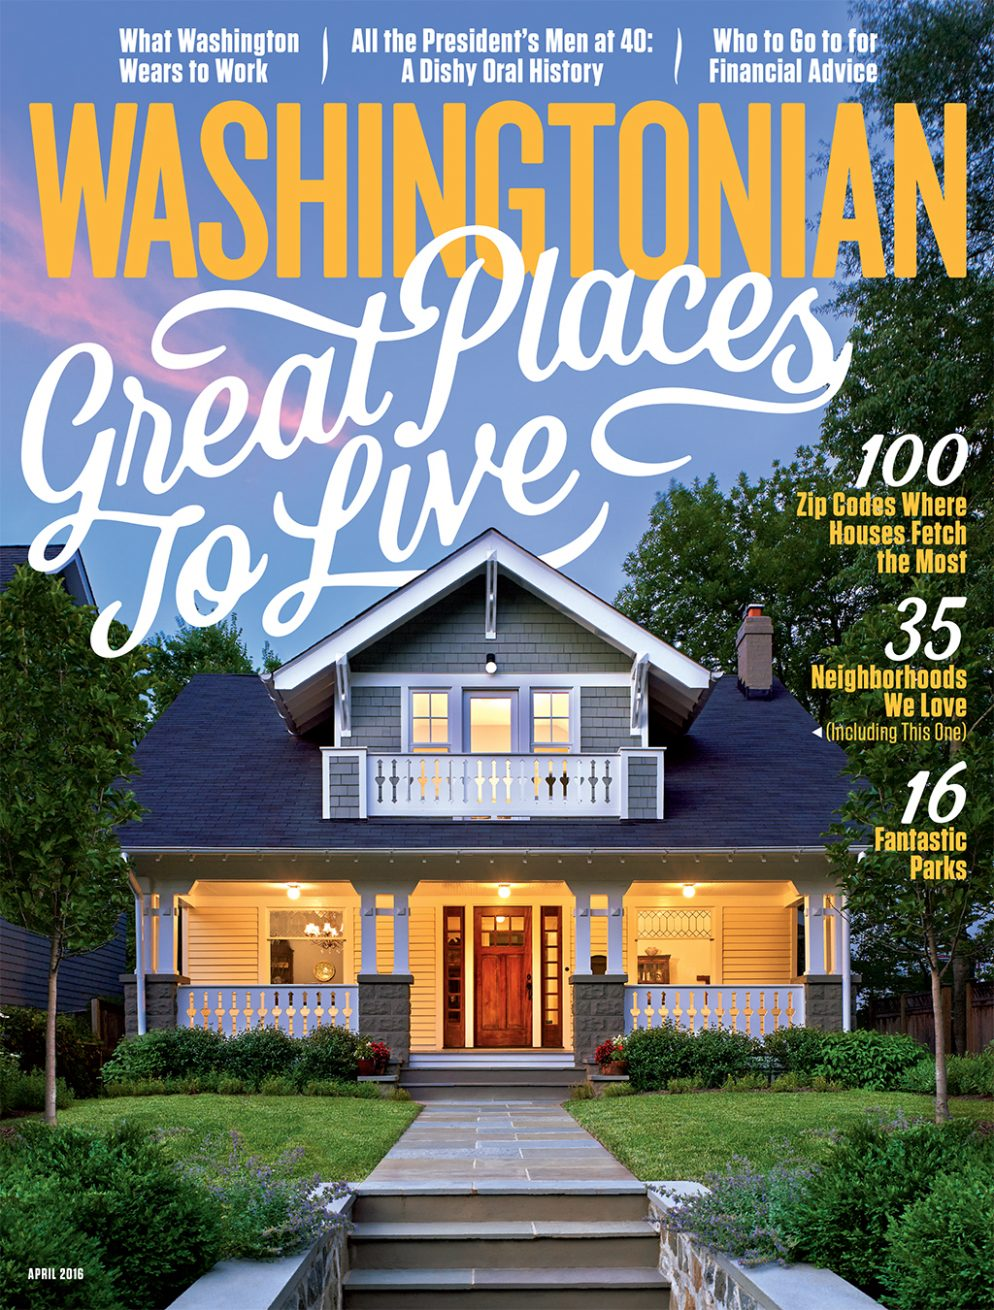 Washingtonian Magazine; April 2016 Cover; Osborn-Layborn Residence; Washington, DC